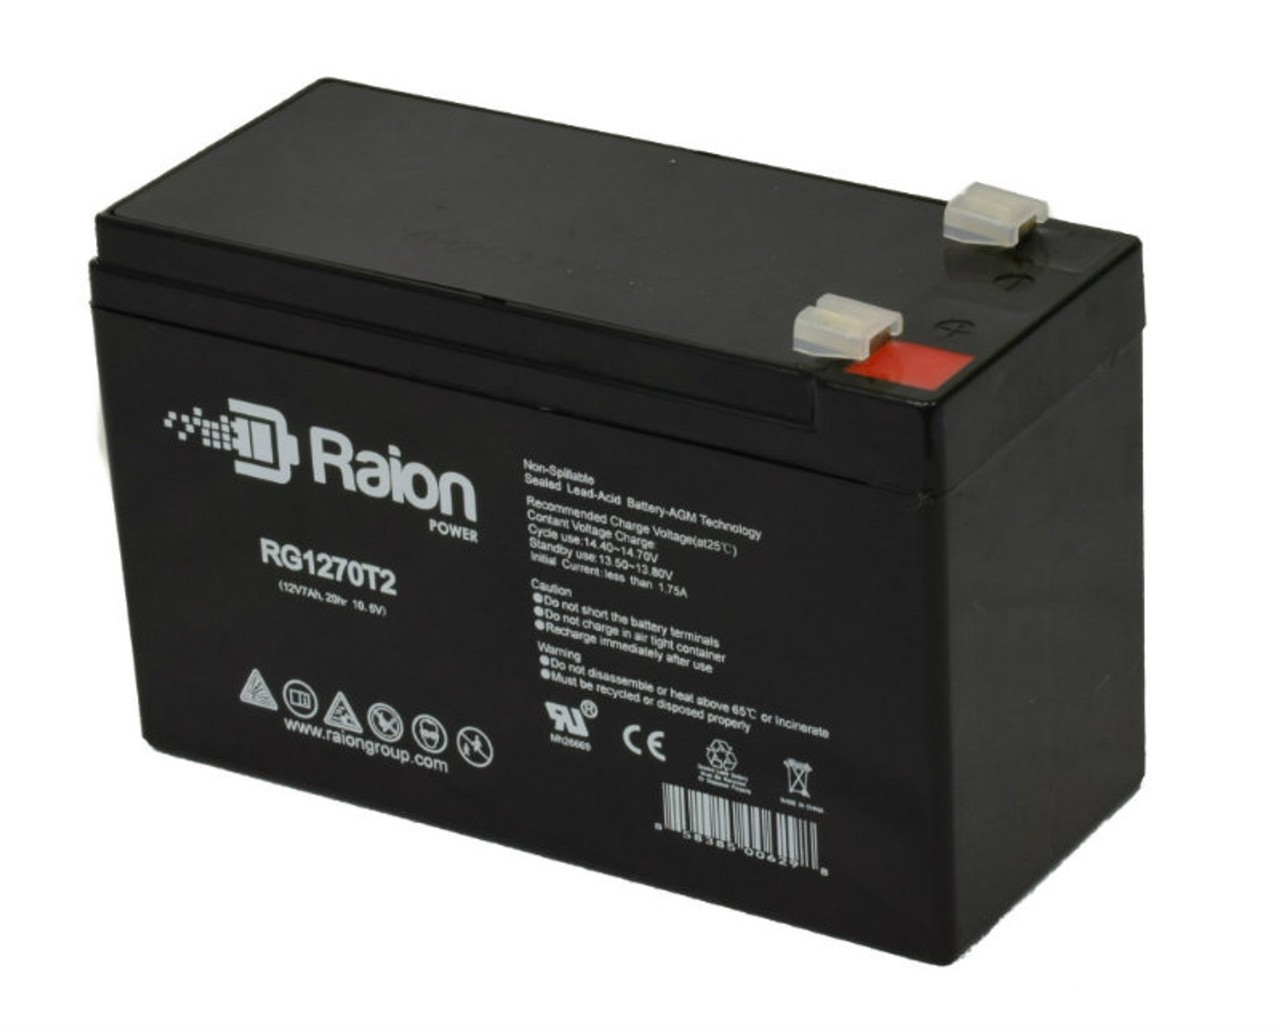 RG1270T2 Sealed Lead Acid OEM Replacement Batteries For Upsonic IS 1000